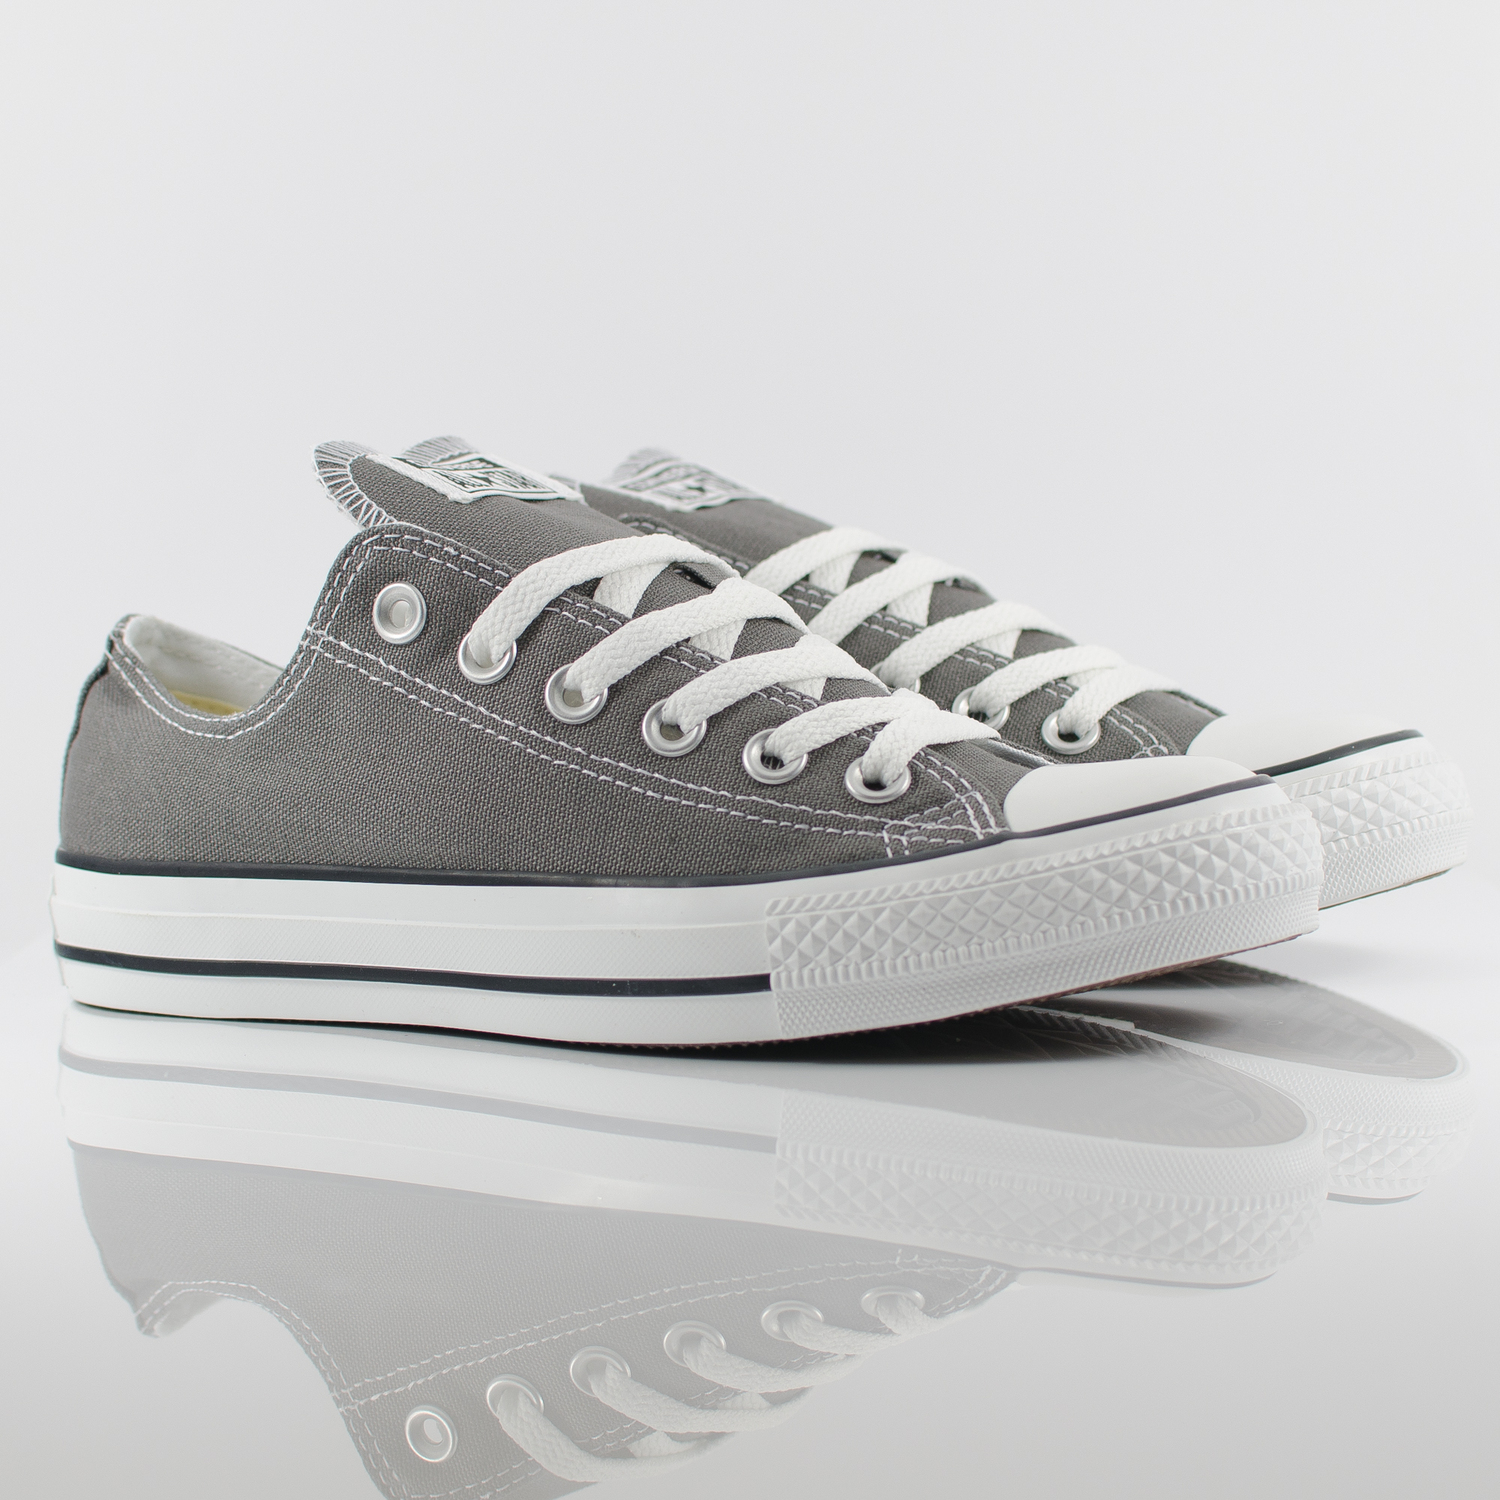 Converse All Star Ox Low Chuck Taylor Charcoal Grey Trainers